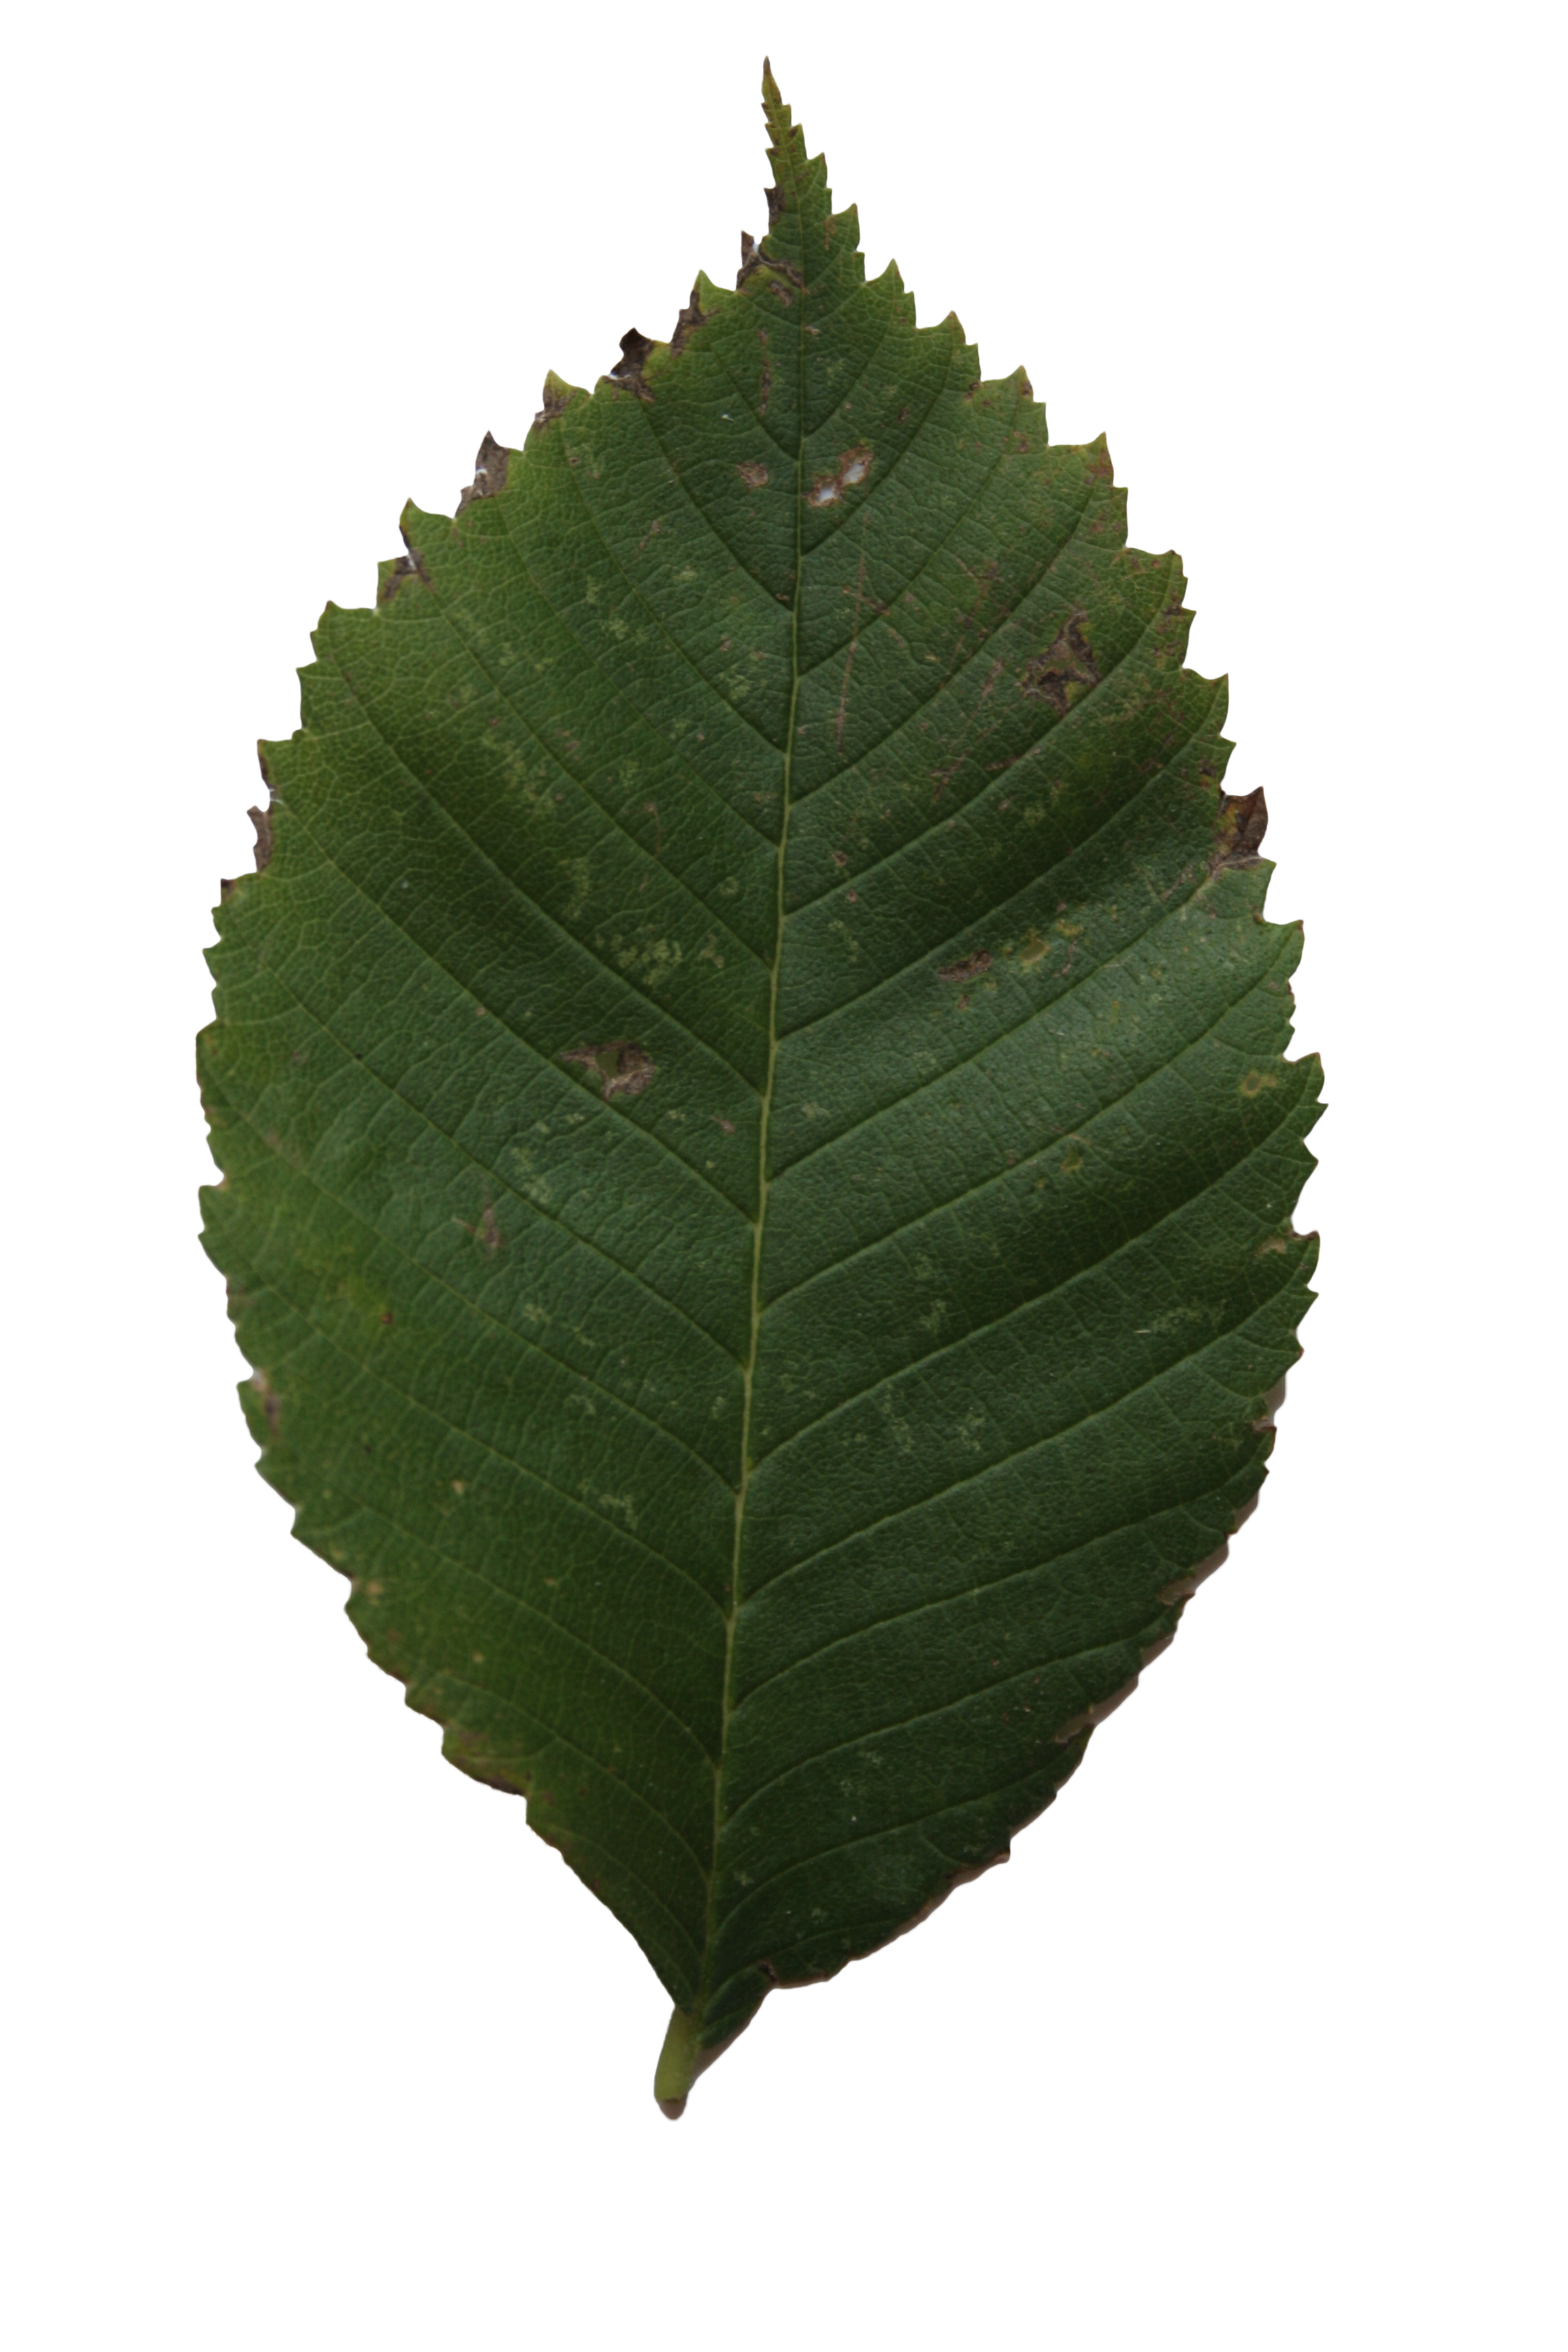 Linden leaf texture | Free Cut Out people, trees and leaves